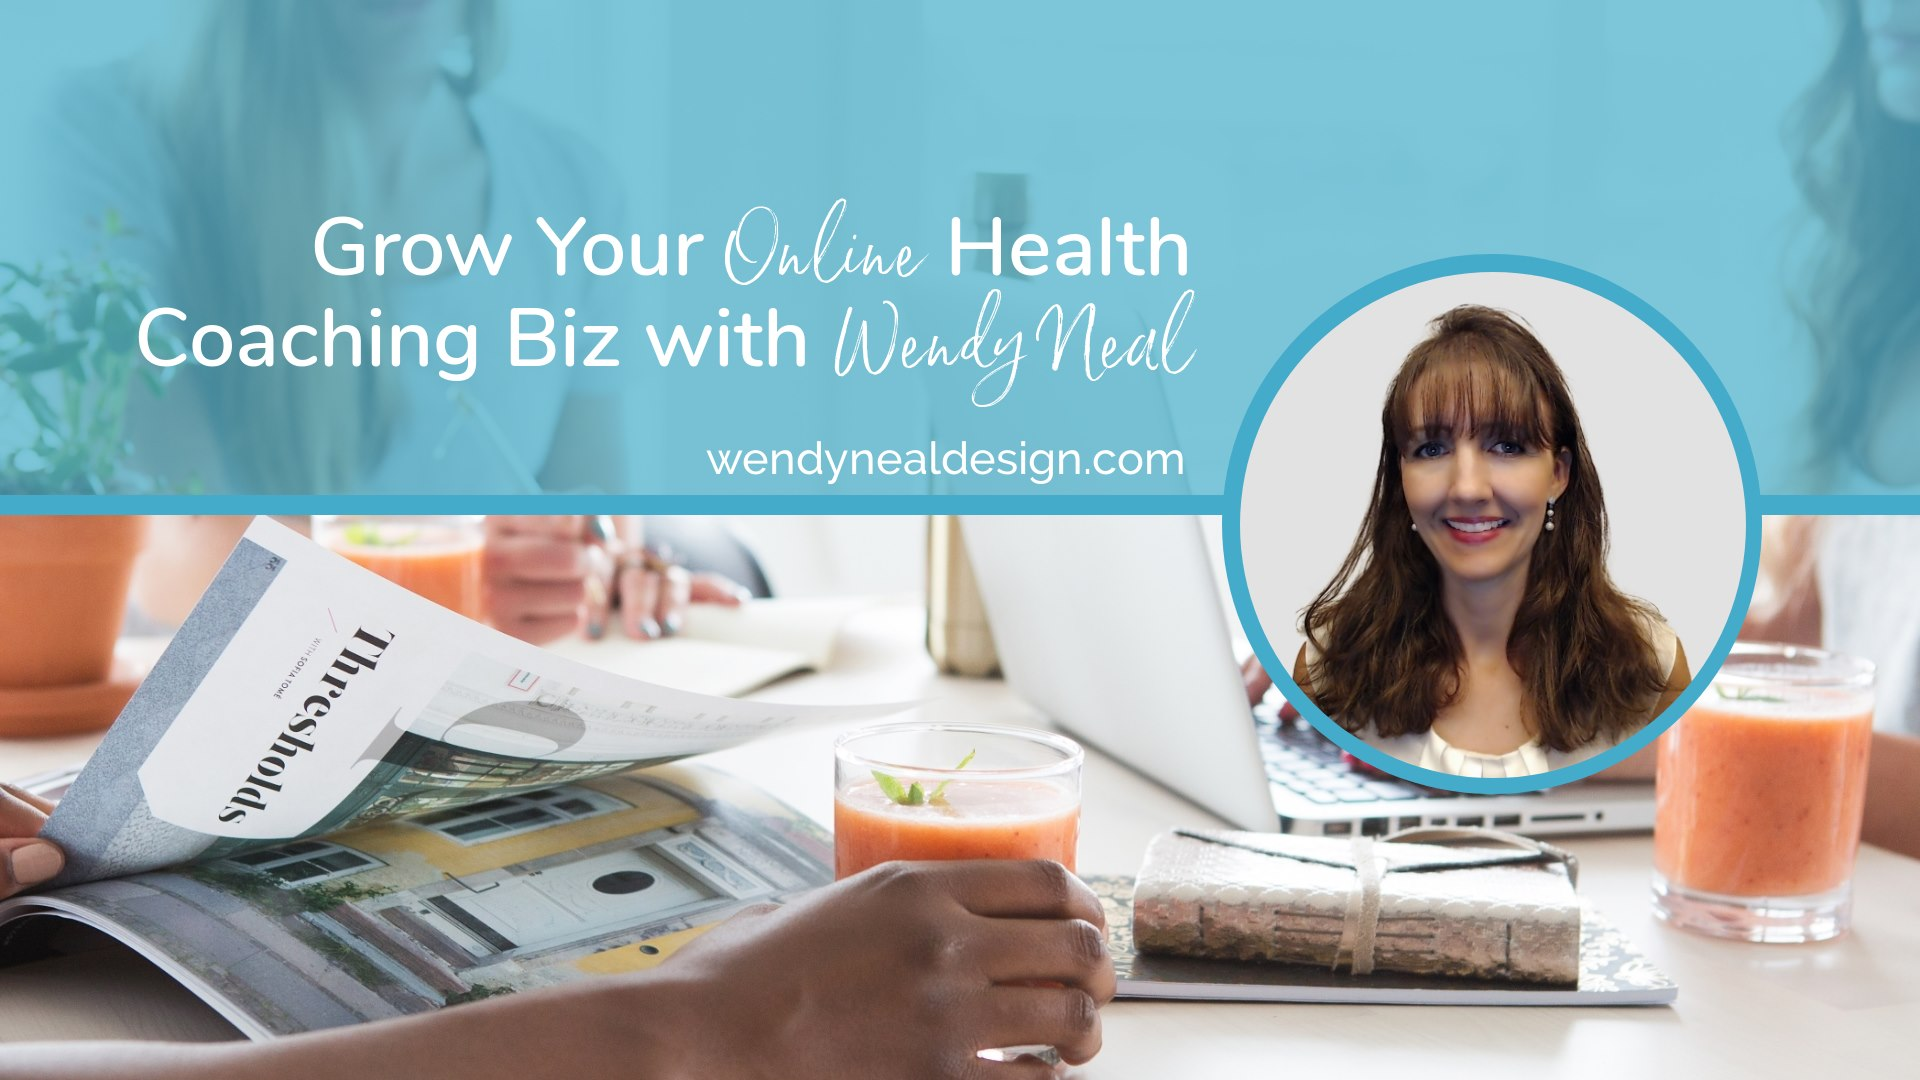 Facebook Community Group | Grow Your Online Health Biz with Wendy Neal